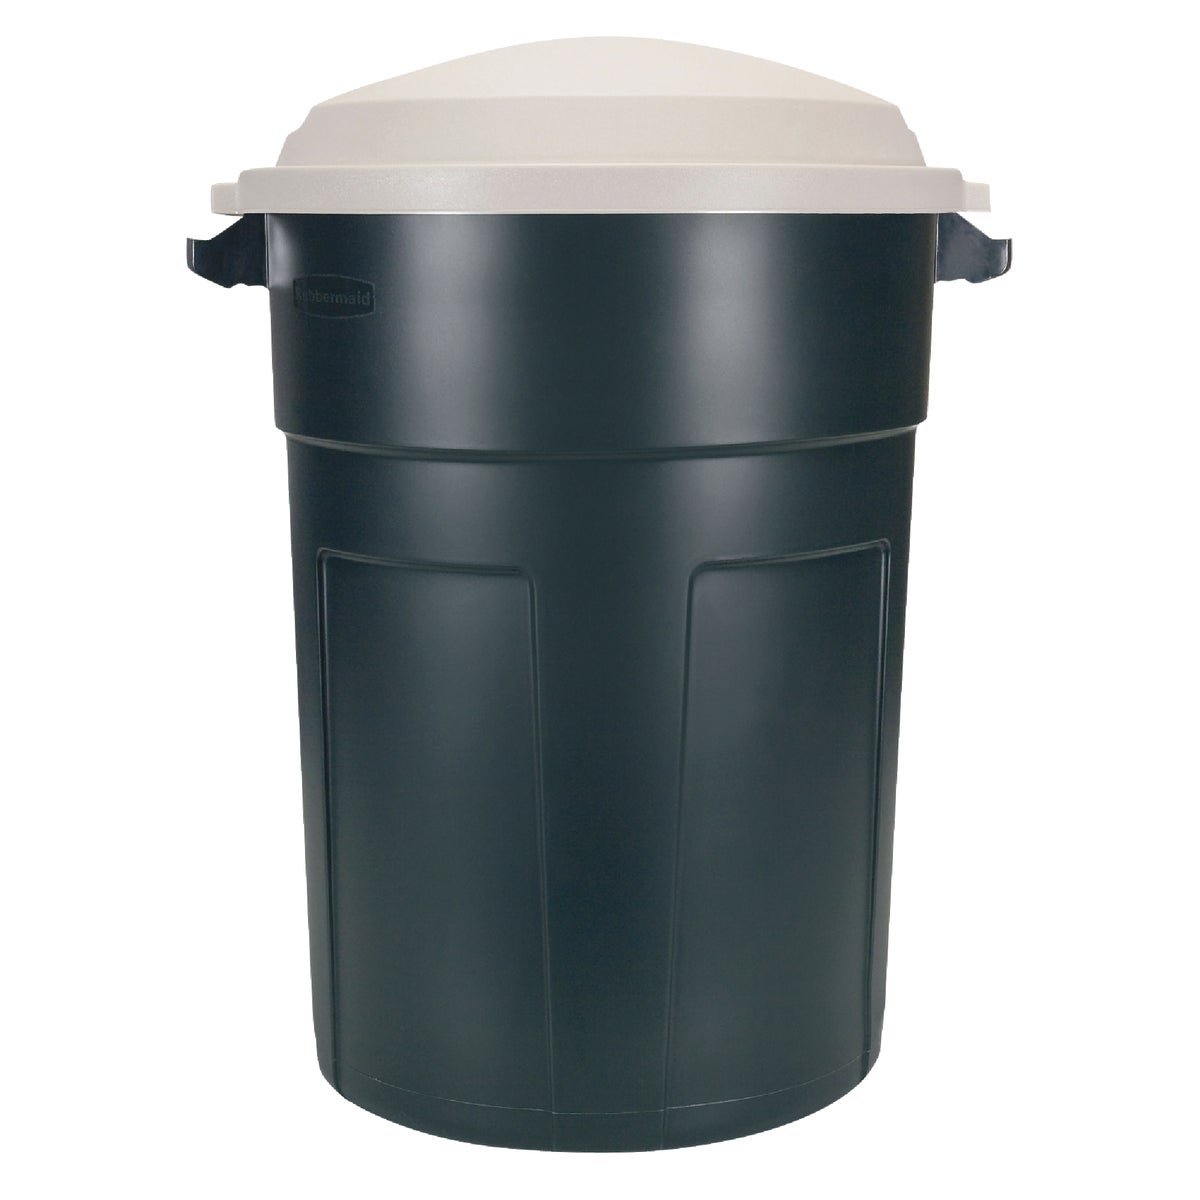 32GAL GREEN TRASH CAN - FG289487EGRN by Rubbermaid Home